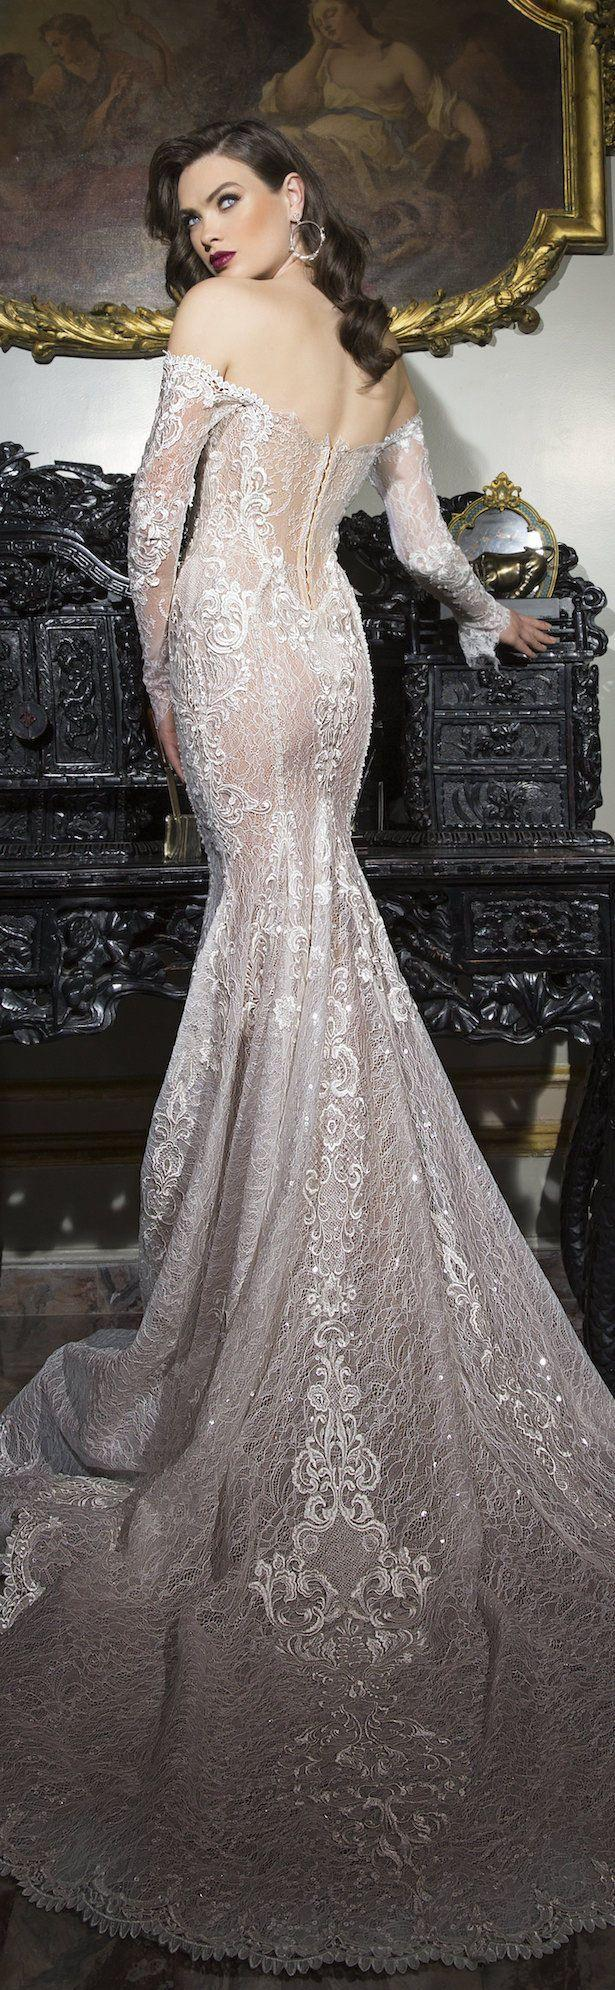 Mariage - Shabi & Israel - Haute Couture 2016 Bridal Collection